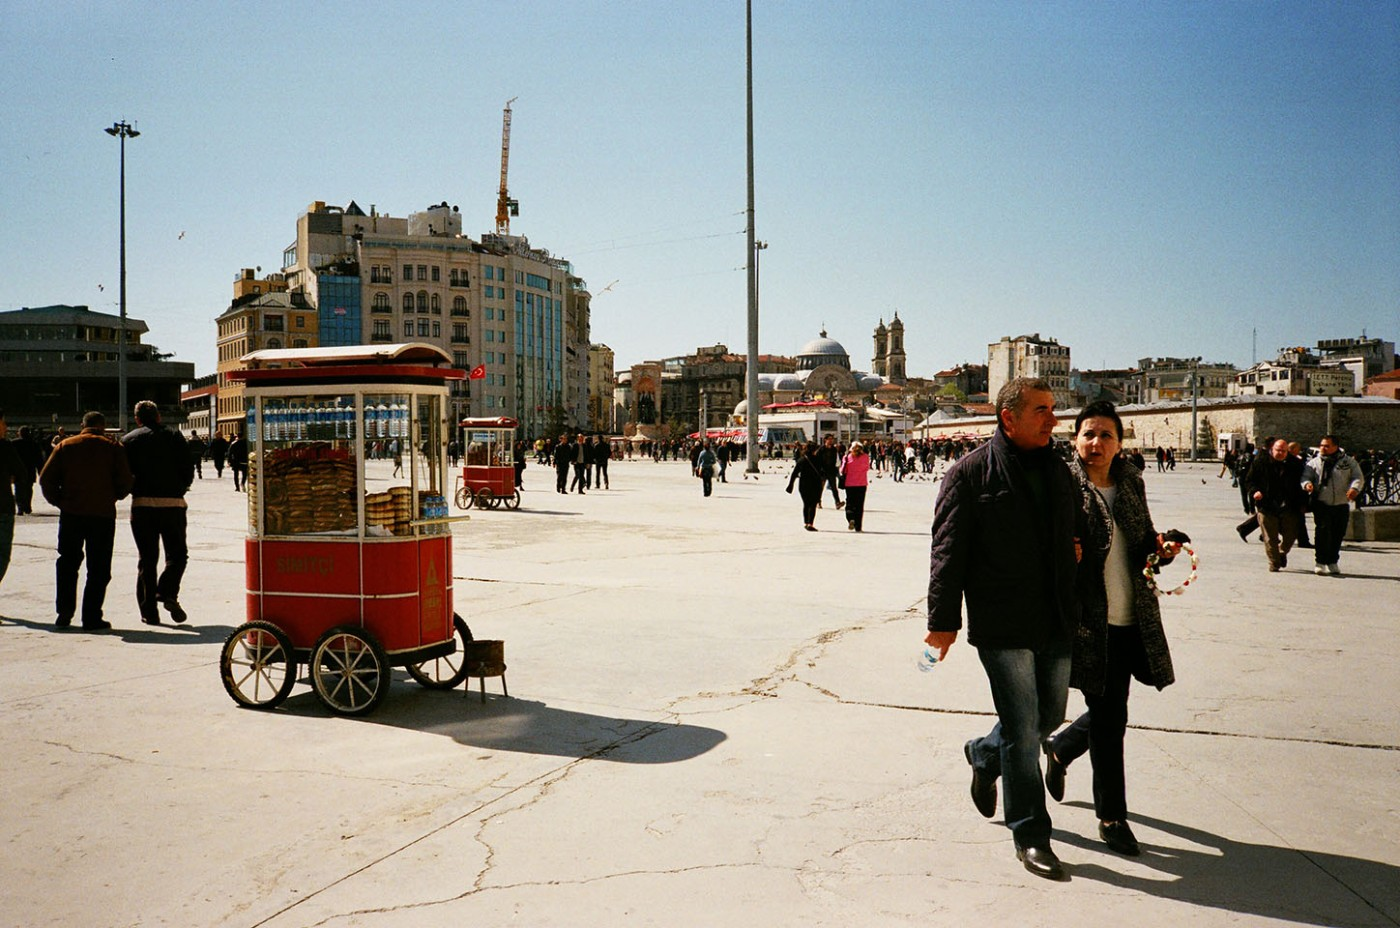 Taksim Square: These ubiquitous red stands selling simit, a traditional Turkish bread ring covered in sesame seeds, can be found all over Istanbul especially in public squares and near major transportation hubs (ferry or bus terminal, metro or train station)